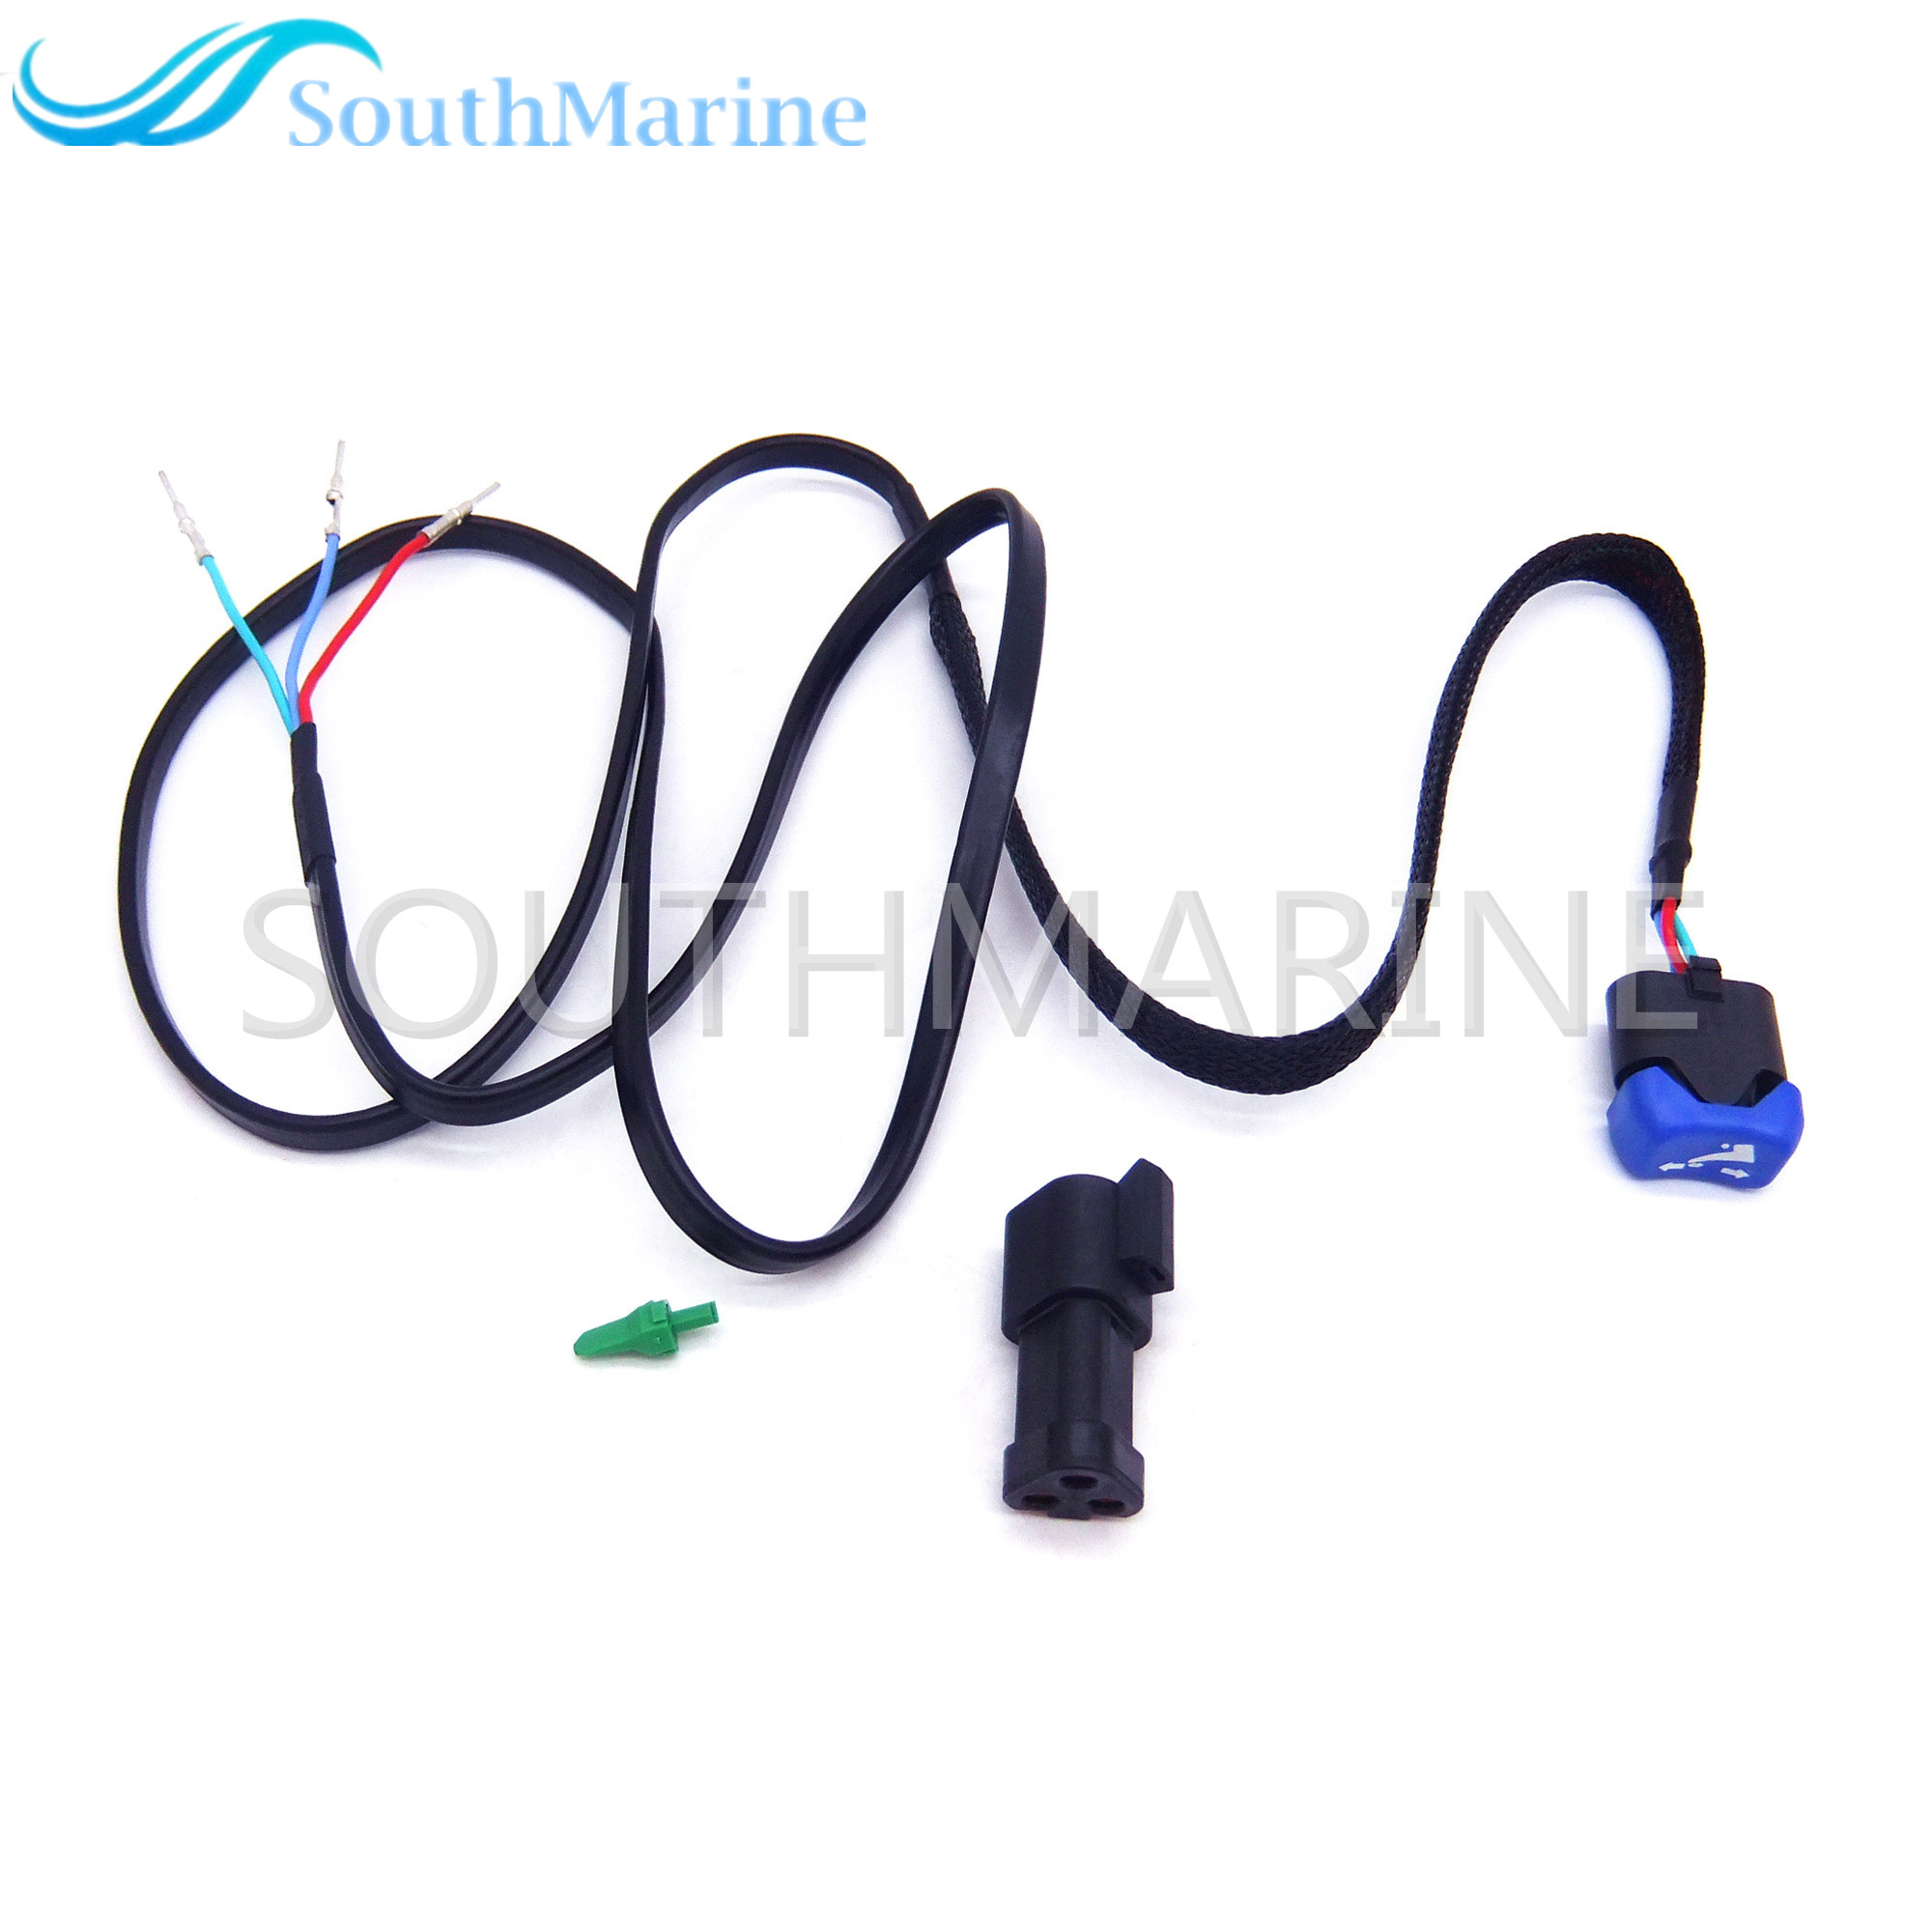 hight resolution of magideal 175974 5005801 ignition switch key assembly with lanyard for omc johnson evinrude 40